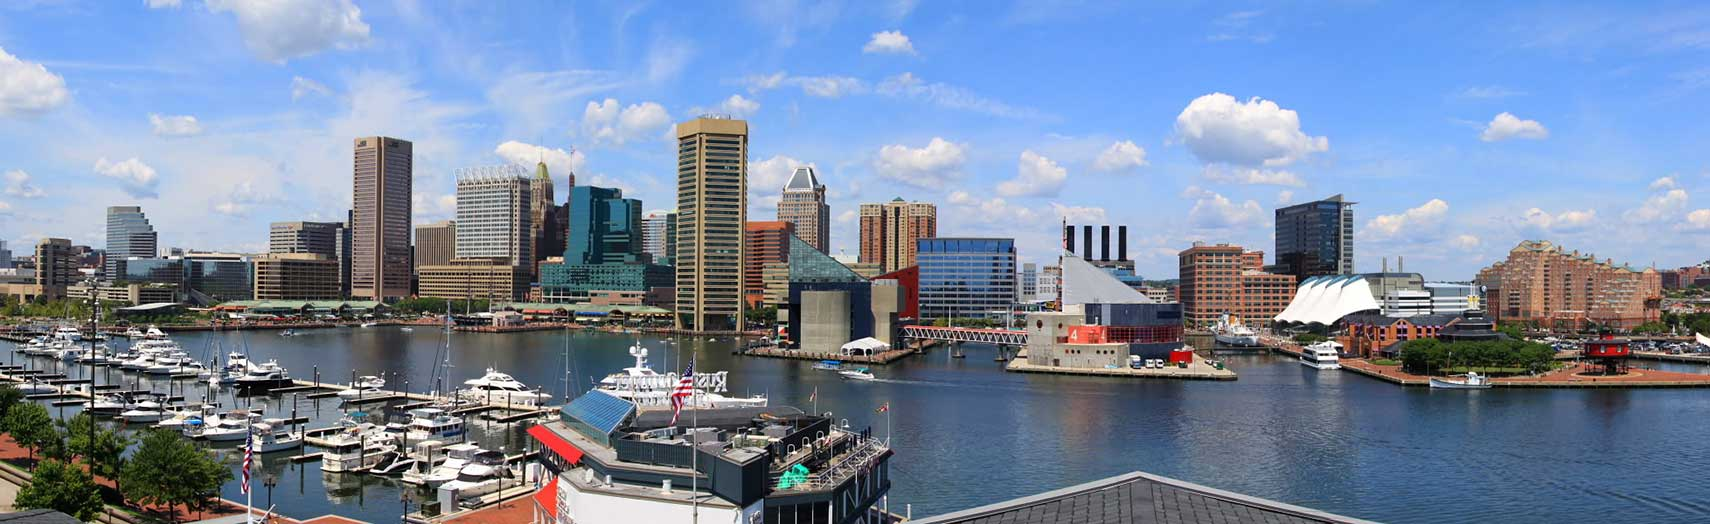 panorama of baltimore showing the inner harbor and adjacent buildings in baltimore maryland